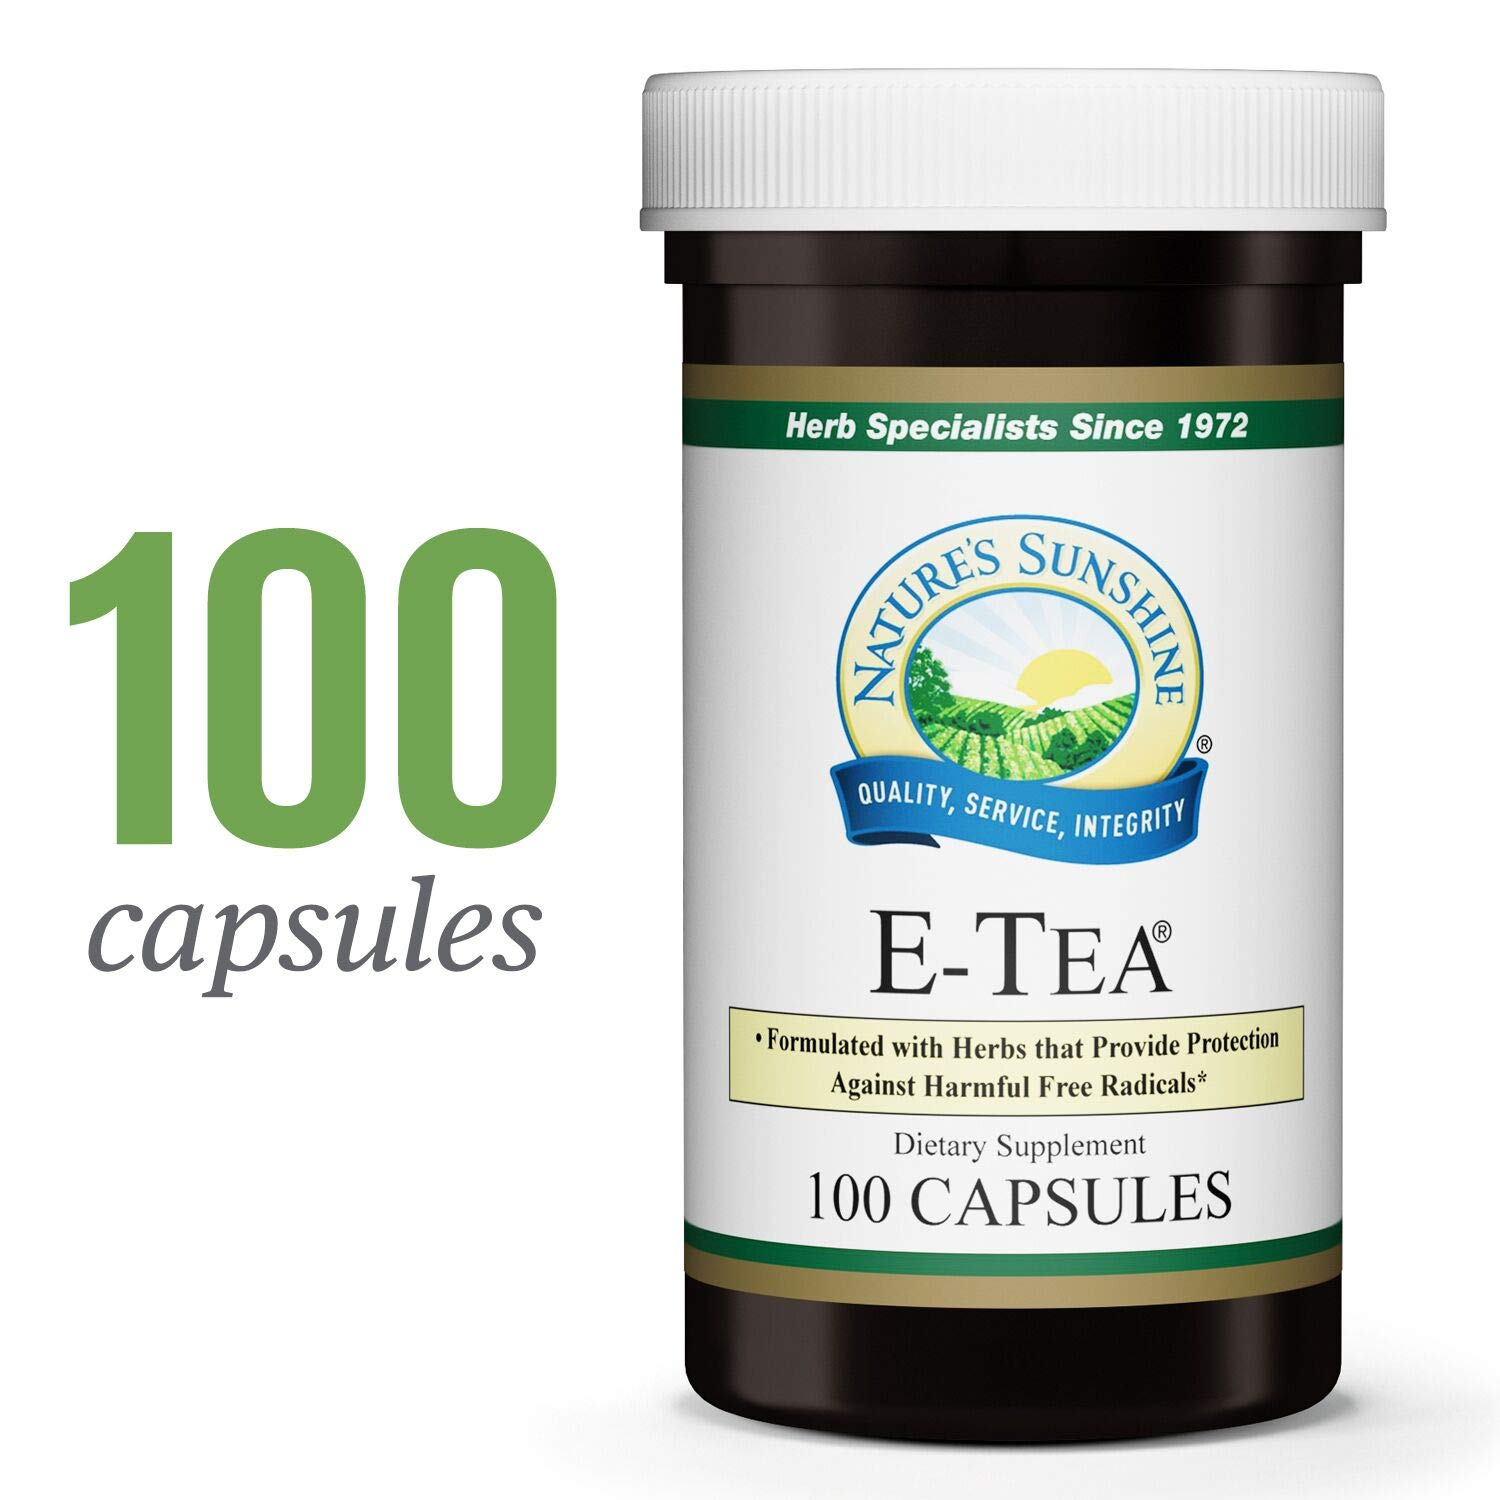 Nature s Sunshine E-Tea Capsules, 100 Capsules Supports Immune System Function and Helps Detoxify The Blood in Convenient Capsules